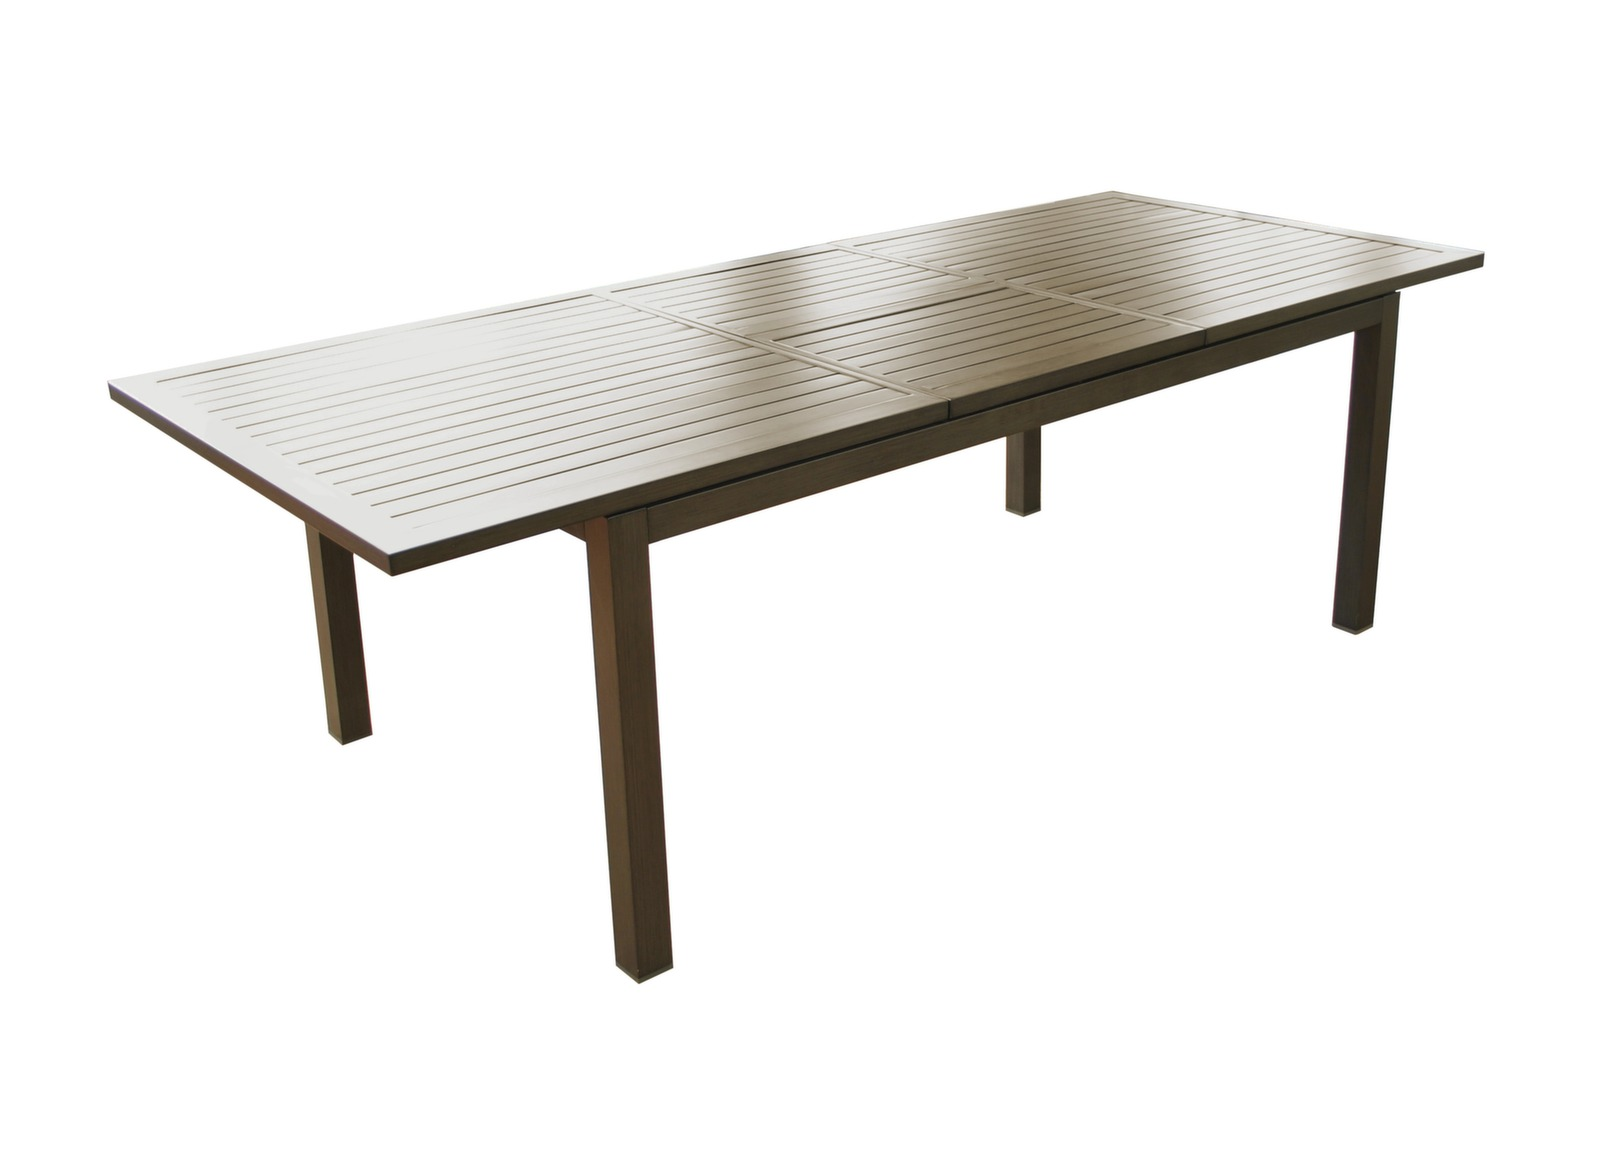 Table extensible milano 180 240 x 100 cm mobilier de for Table extensible 120 240 cm allonge integree